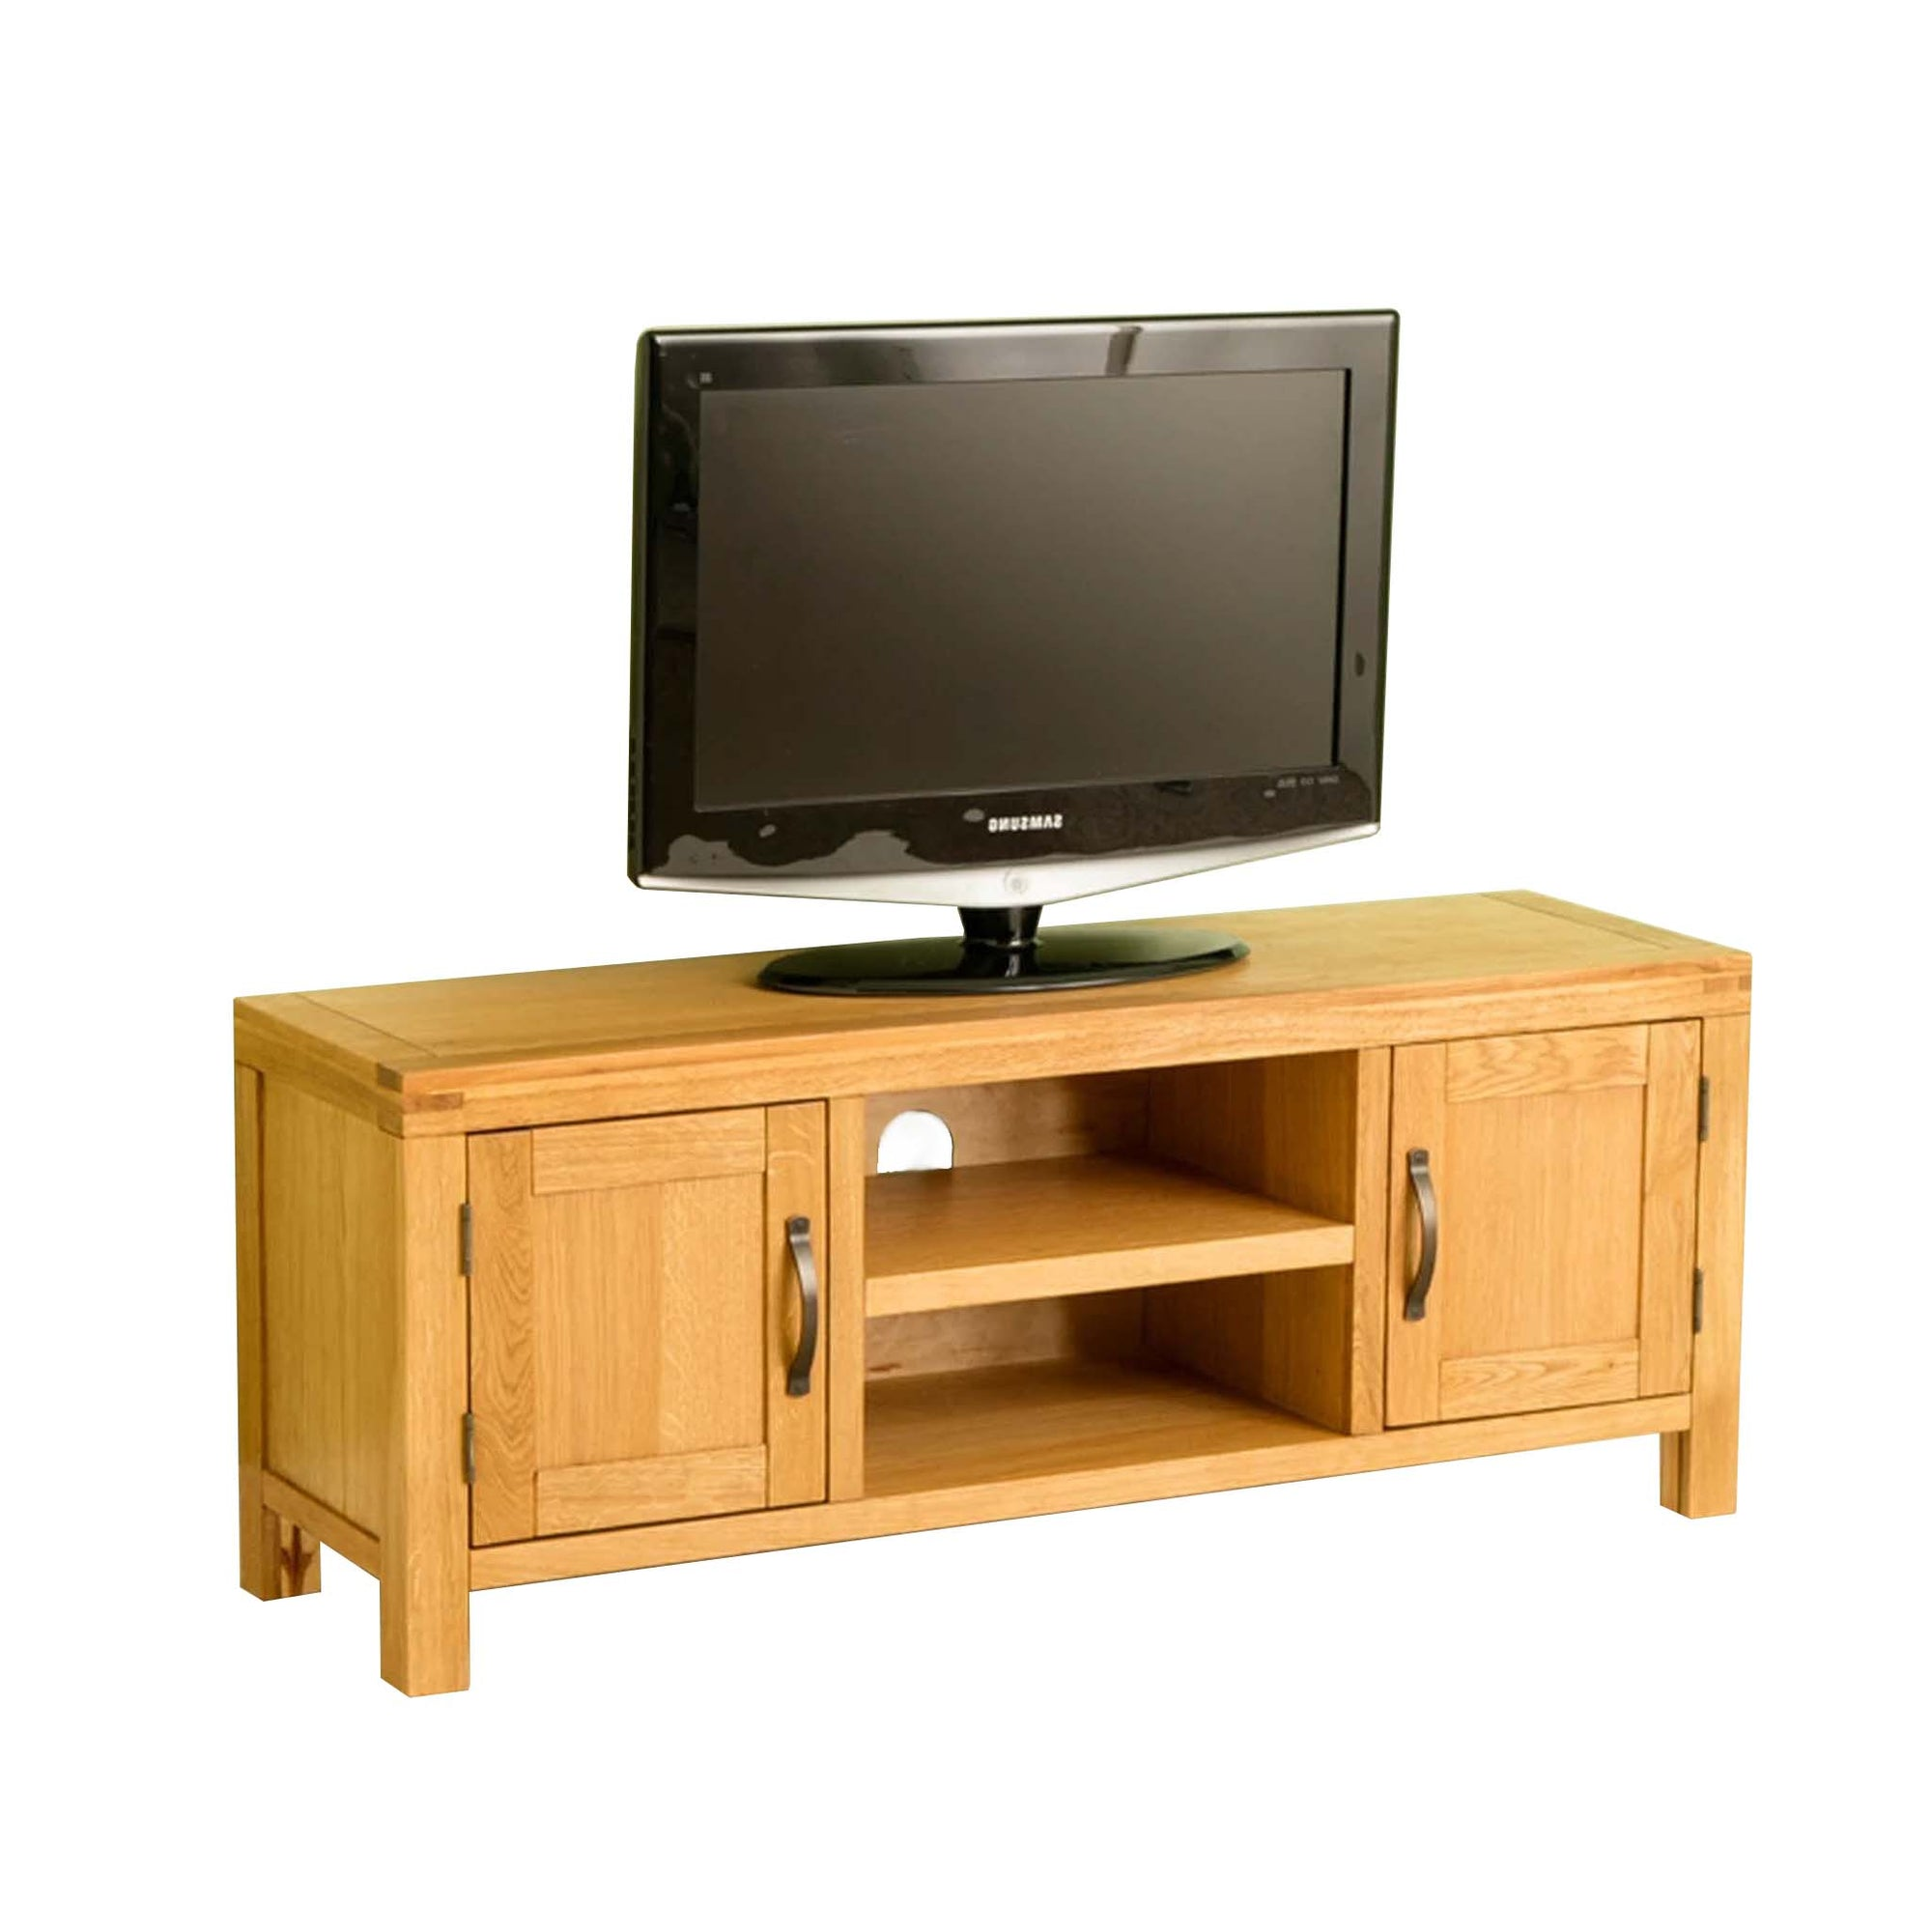 Abbey Waxed 120cm Large Oak TV Stand Storage Unit by Roseland Furniture